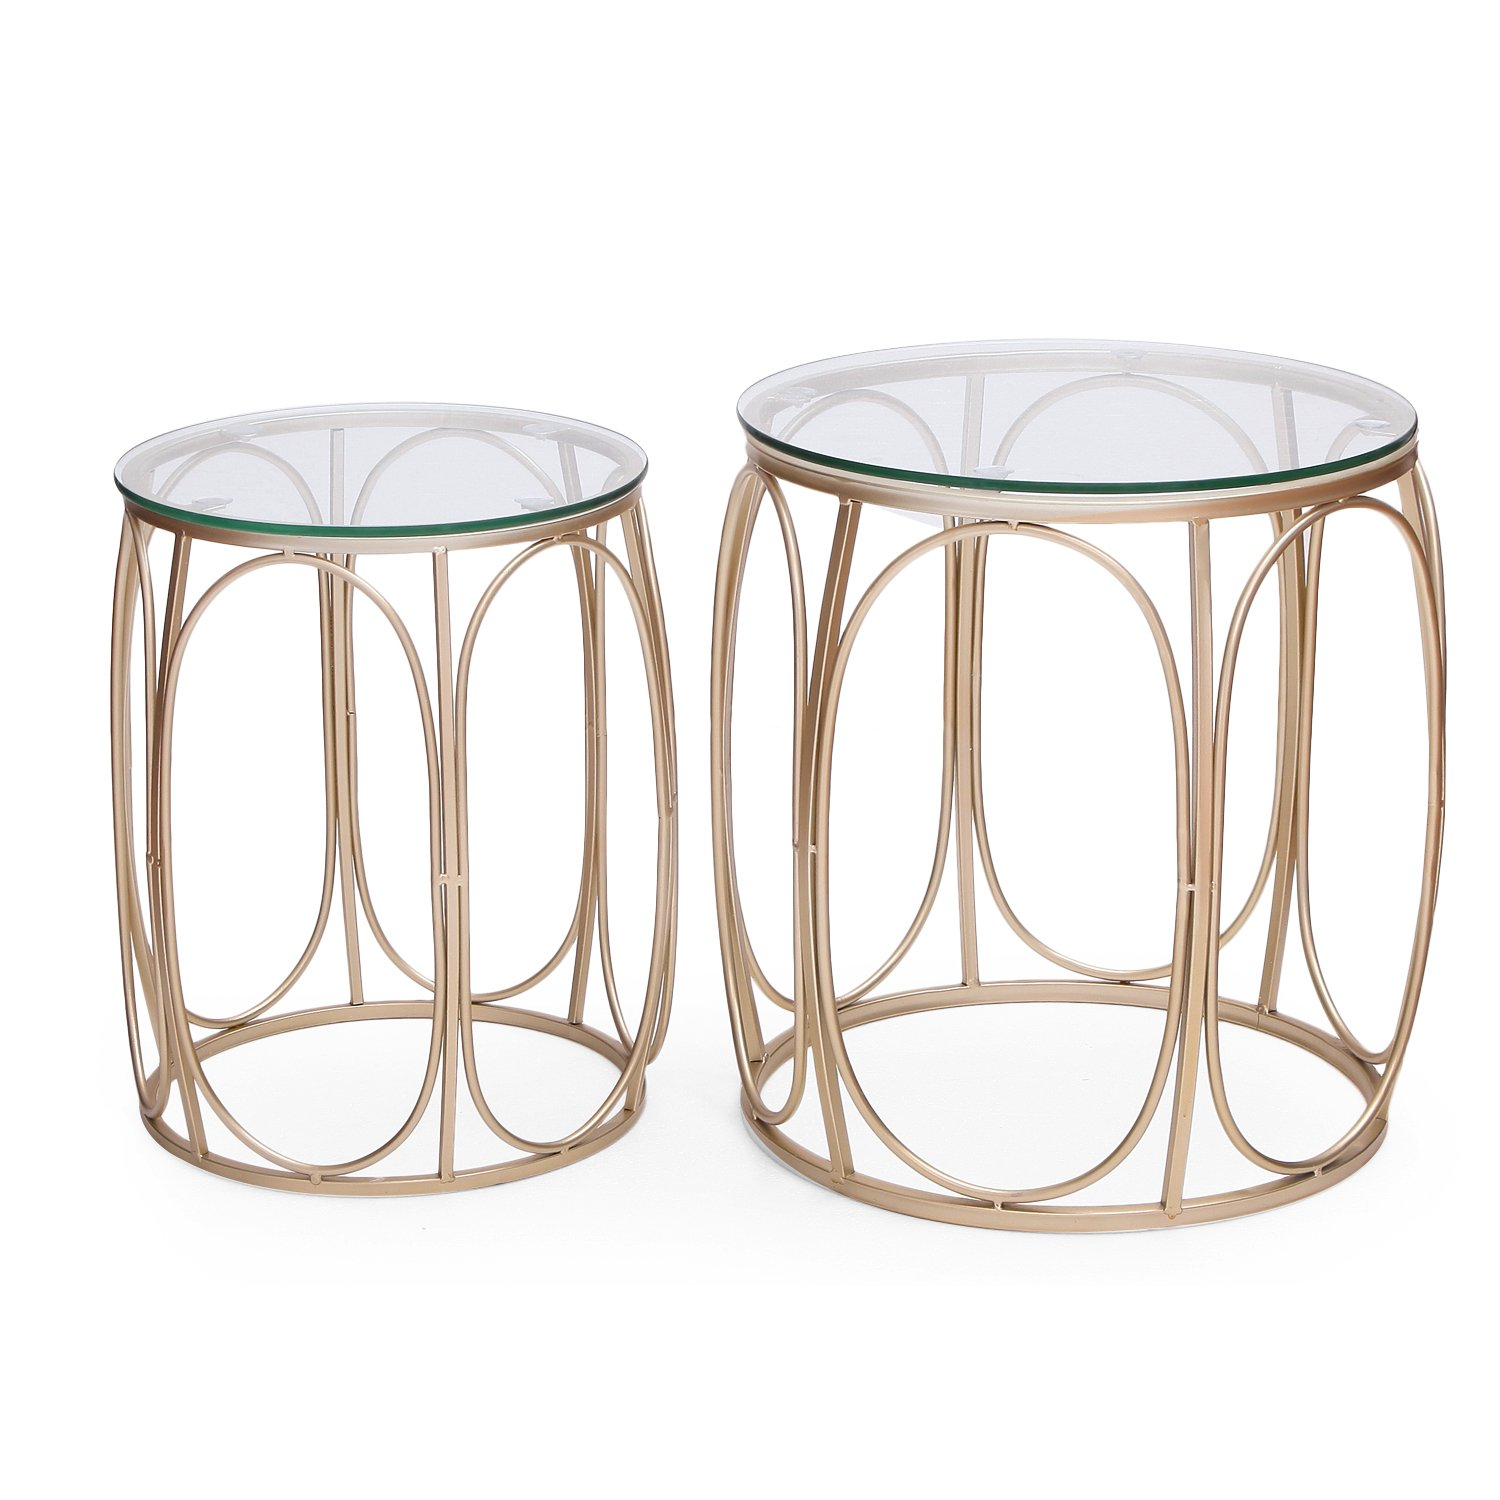 adeco new home garden patio accent metal nesting side end tea table coffee tables black interior decoration ideas round west elm industrial desk ott sofa small vintage console